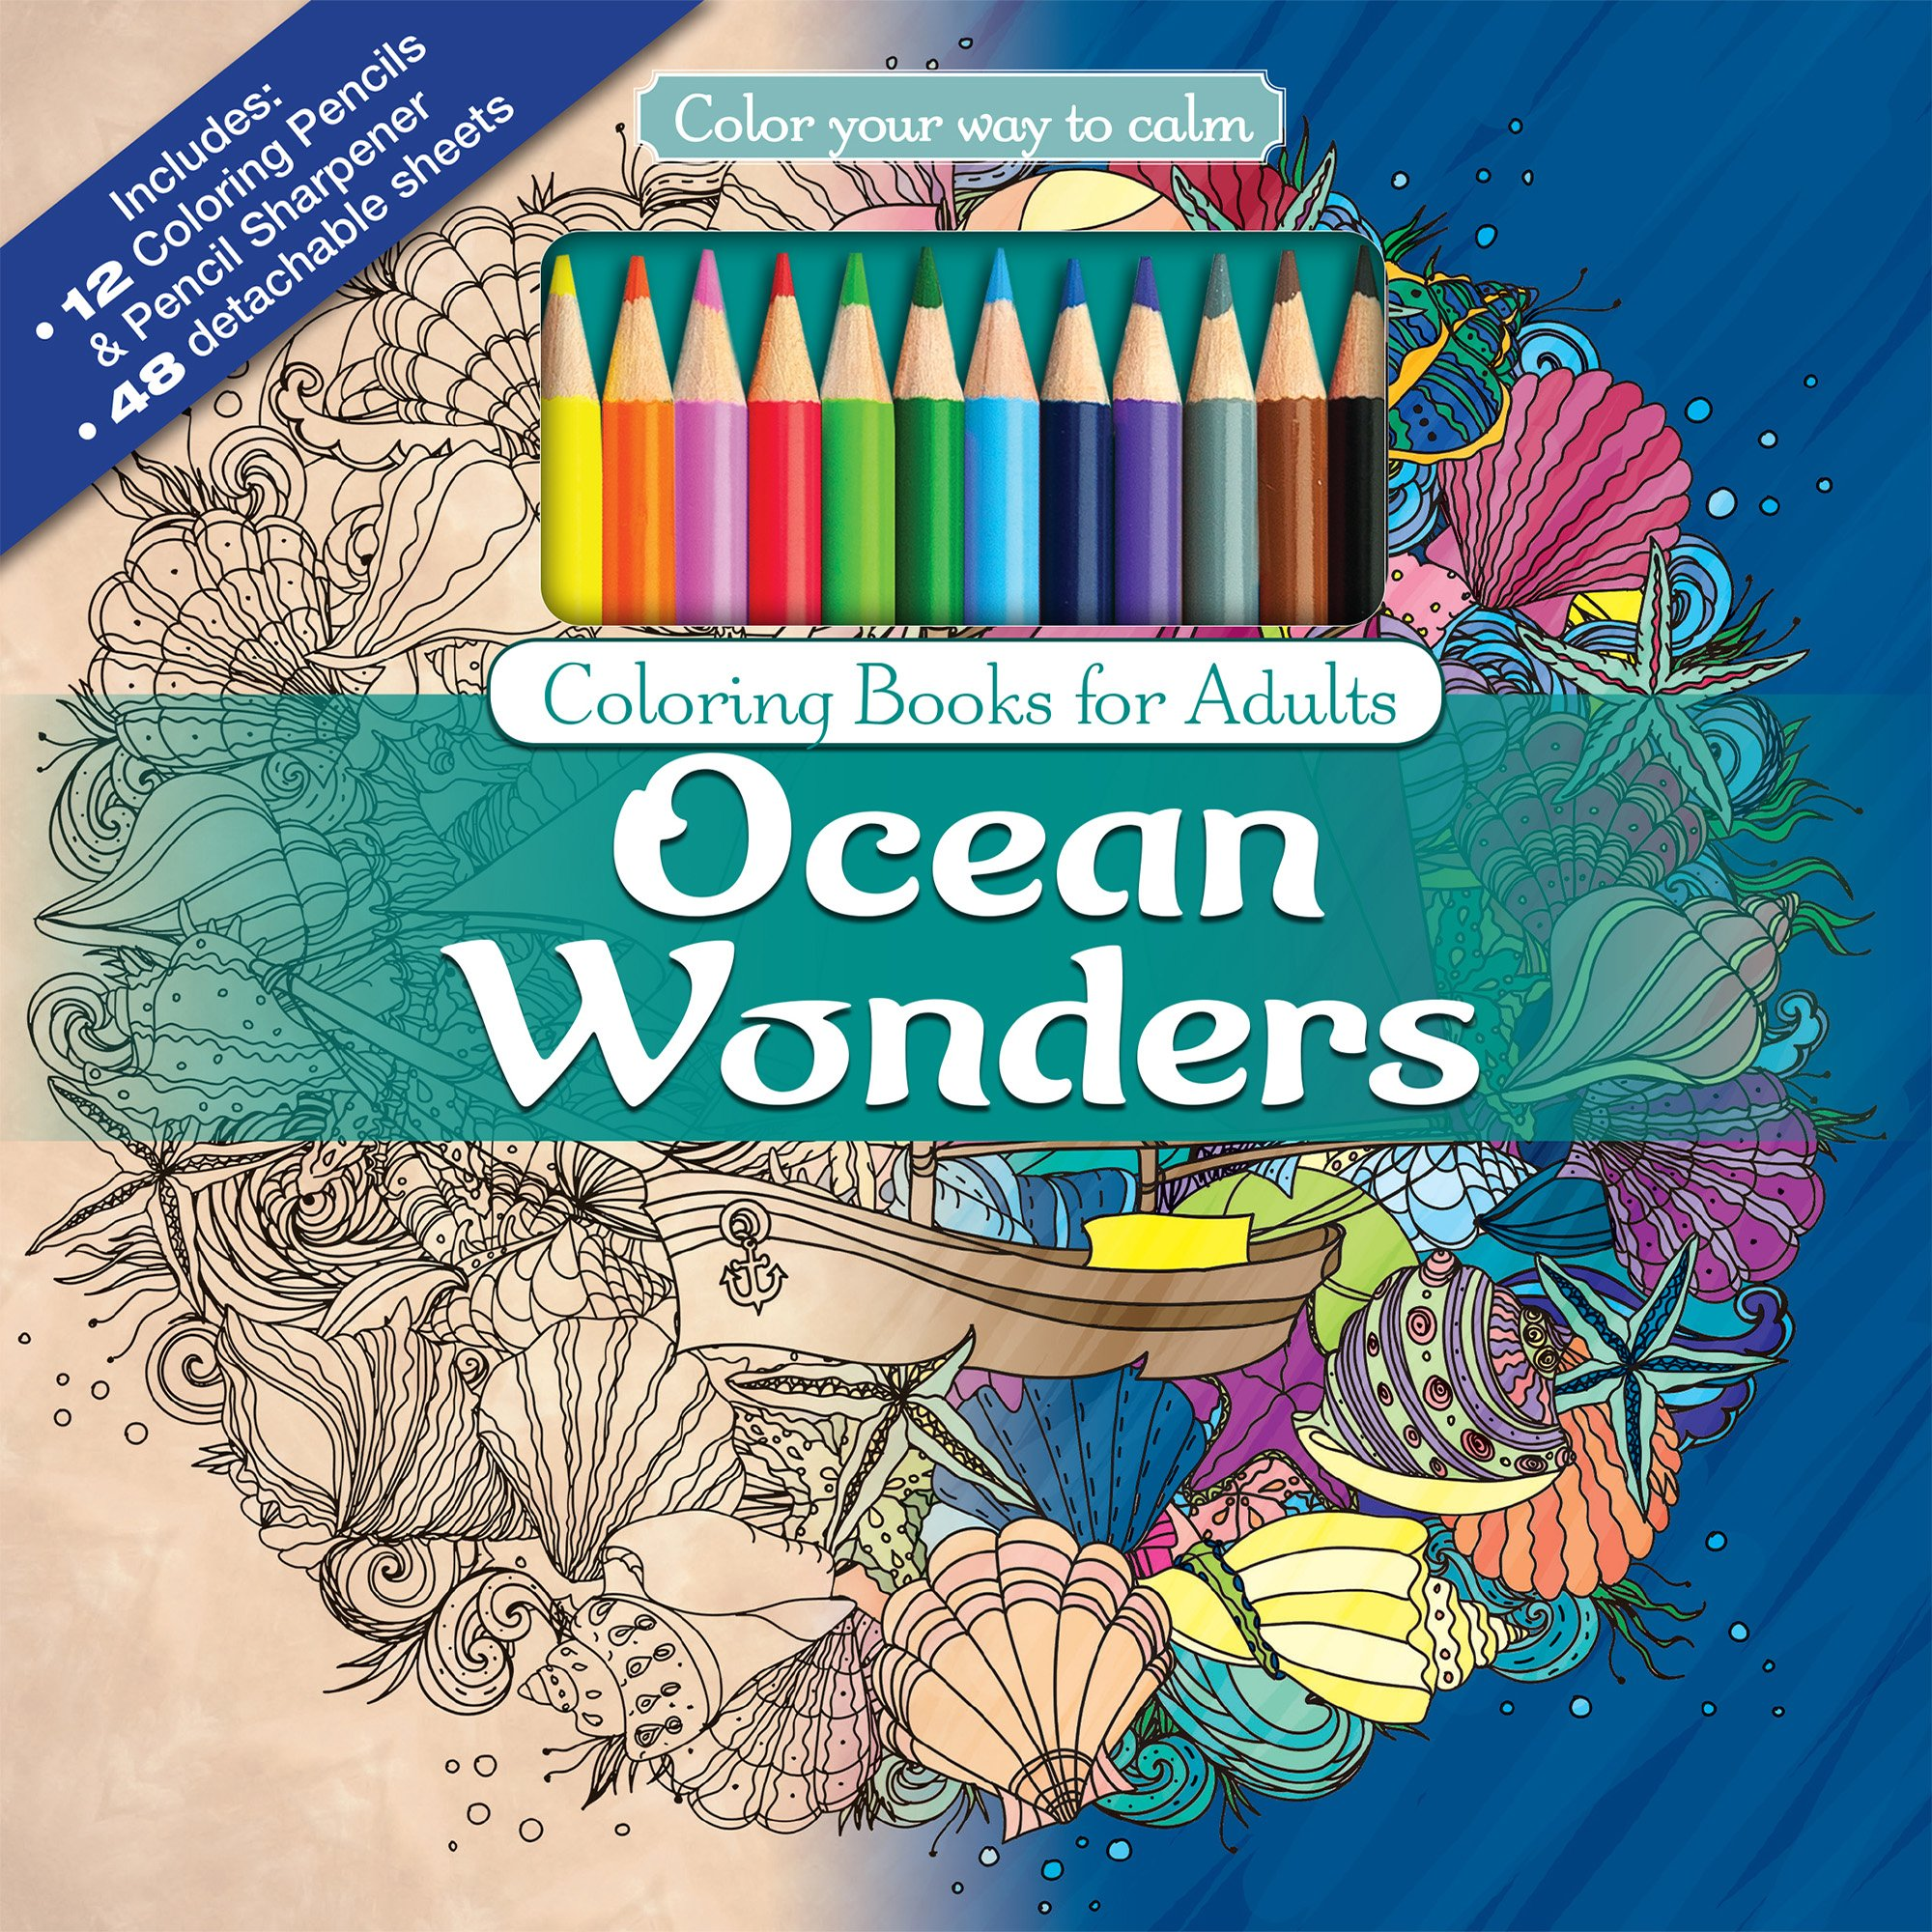 amazoncom ocean wonders adult coloring book set with 24 colored pencils and pencil sharpener included color your way to calm 9781988137186 newbourne - Color Books For Adults